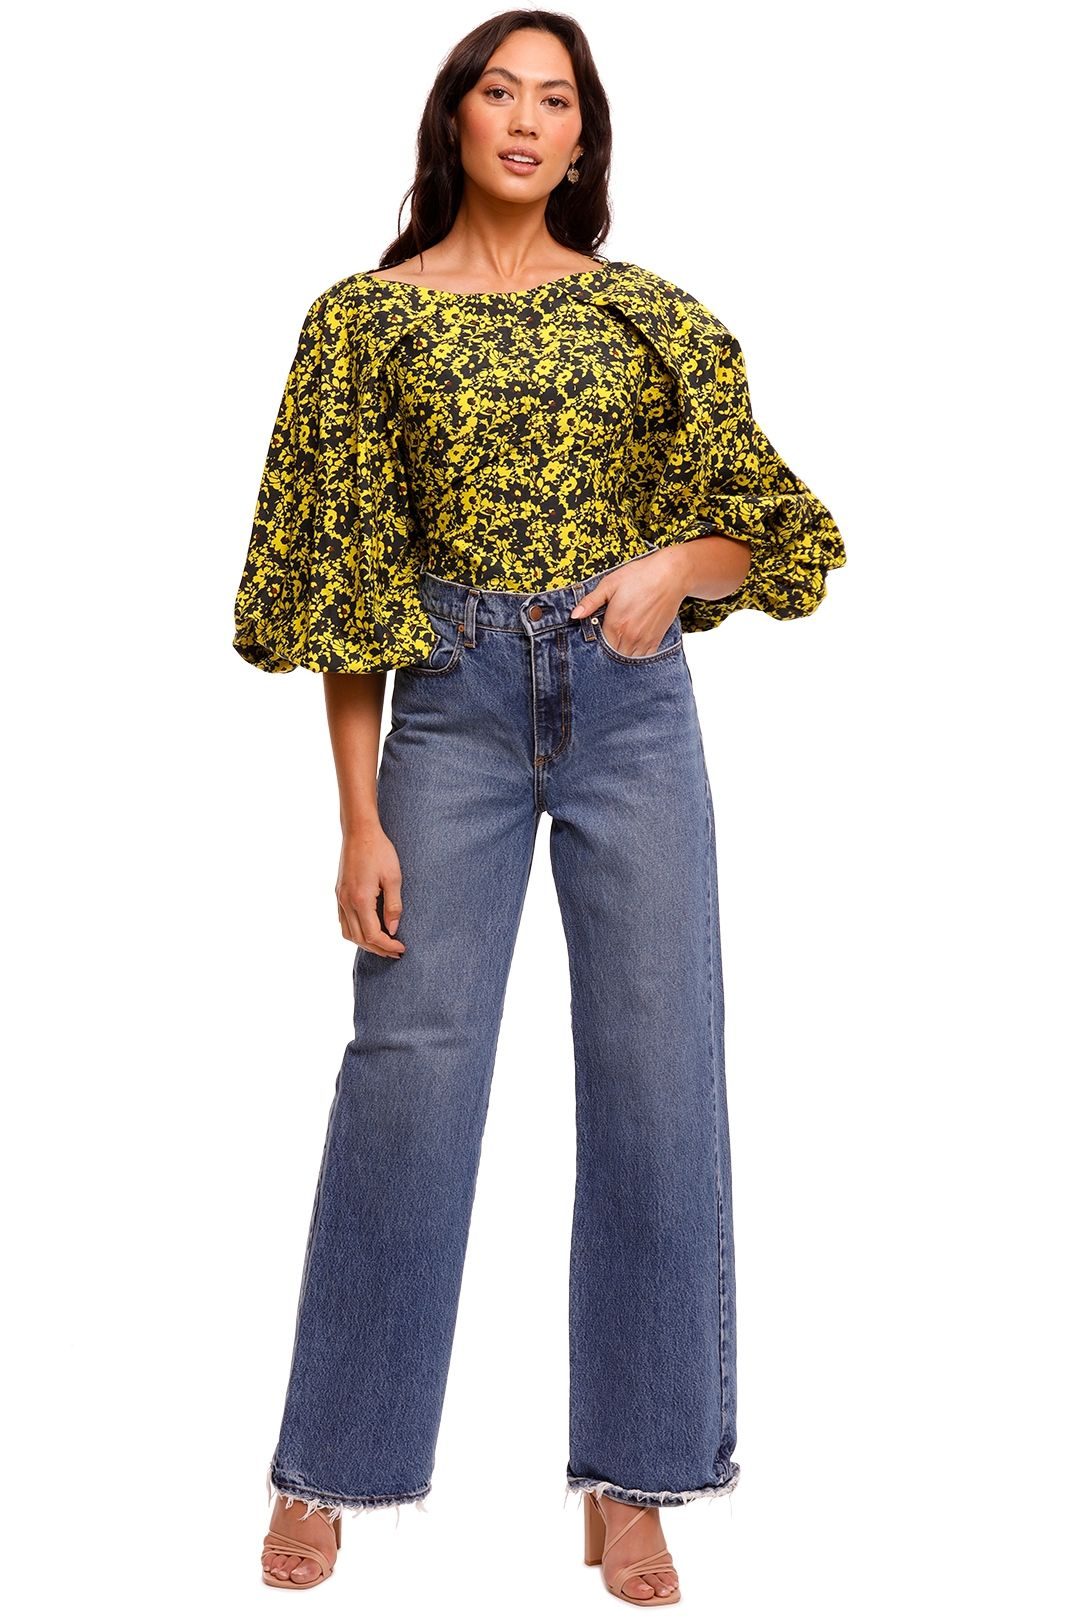 Camilla and Marc Monet Top